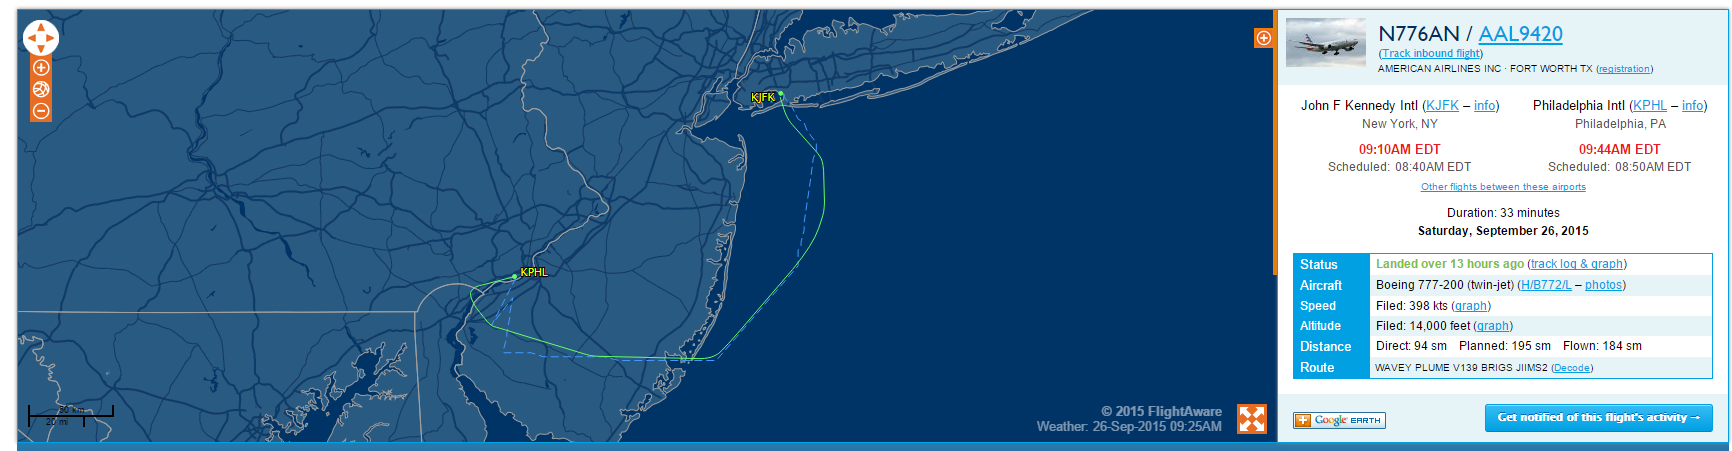 Pope Francis' flight JFK-PHL courtesy of Flightaware.com